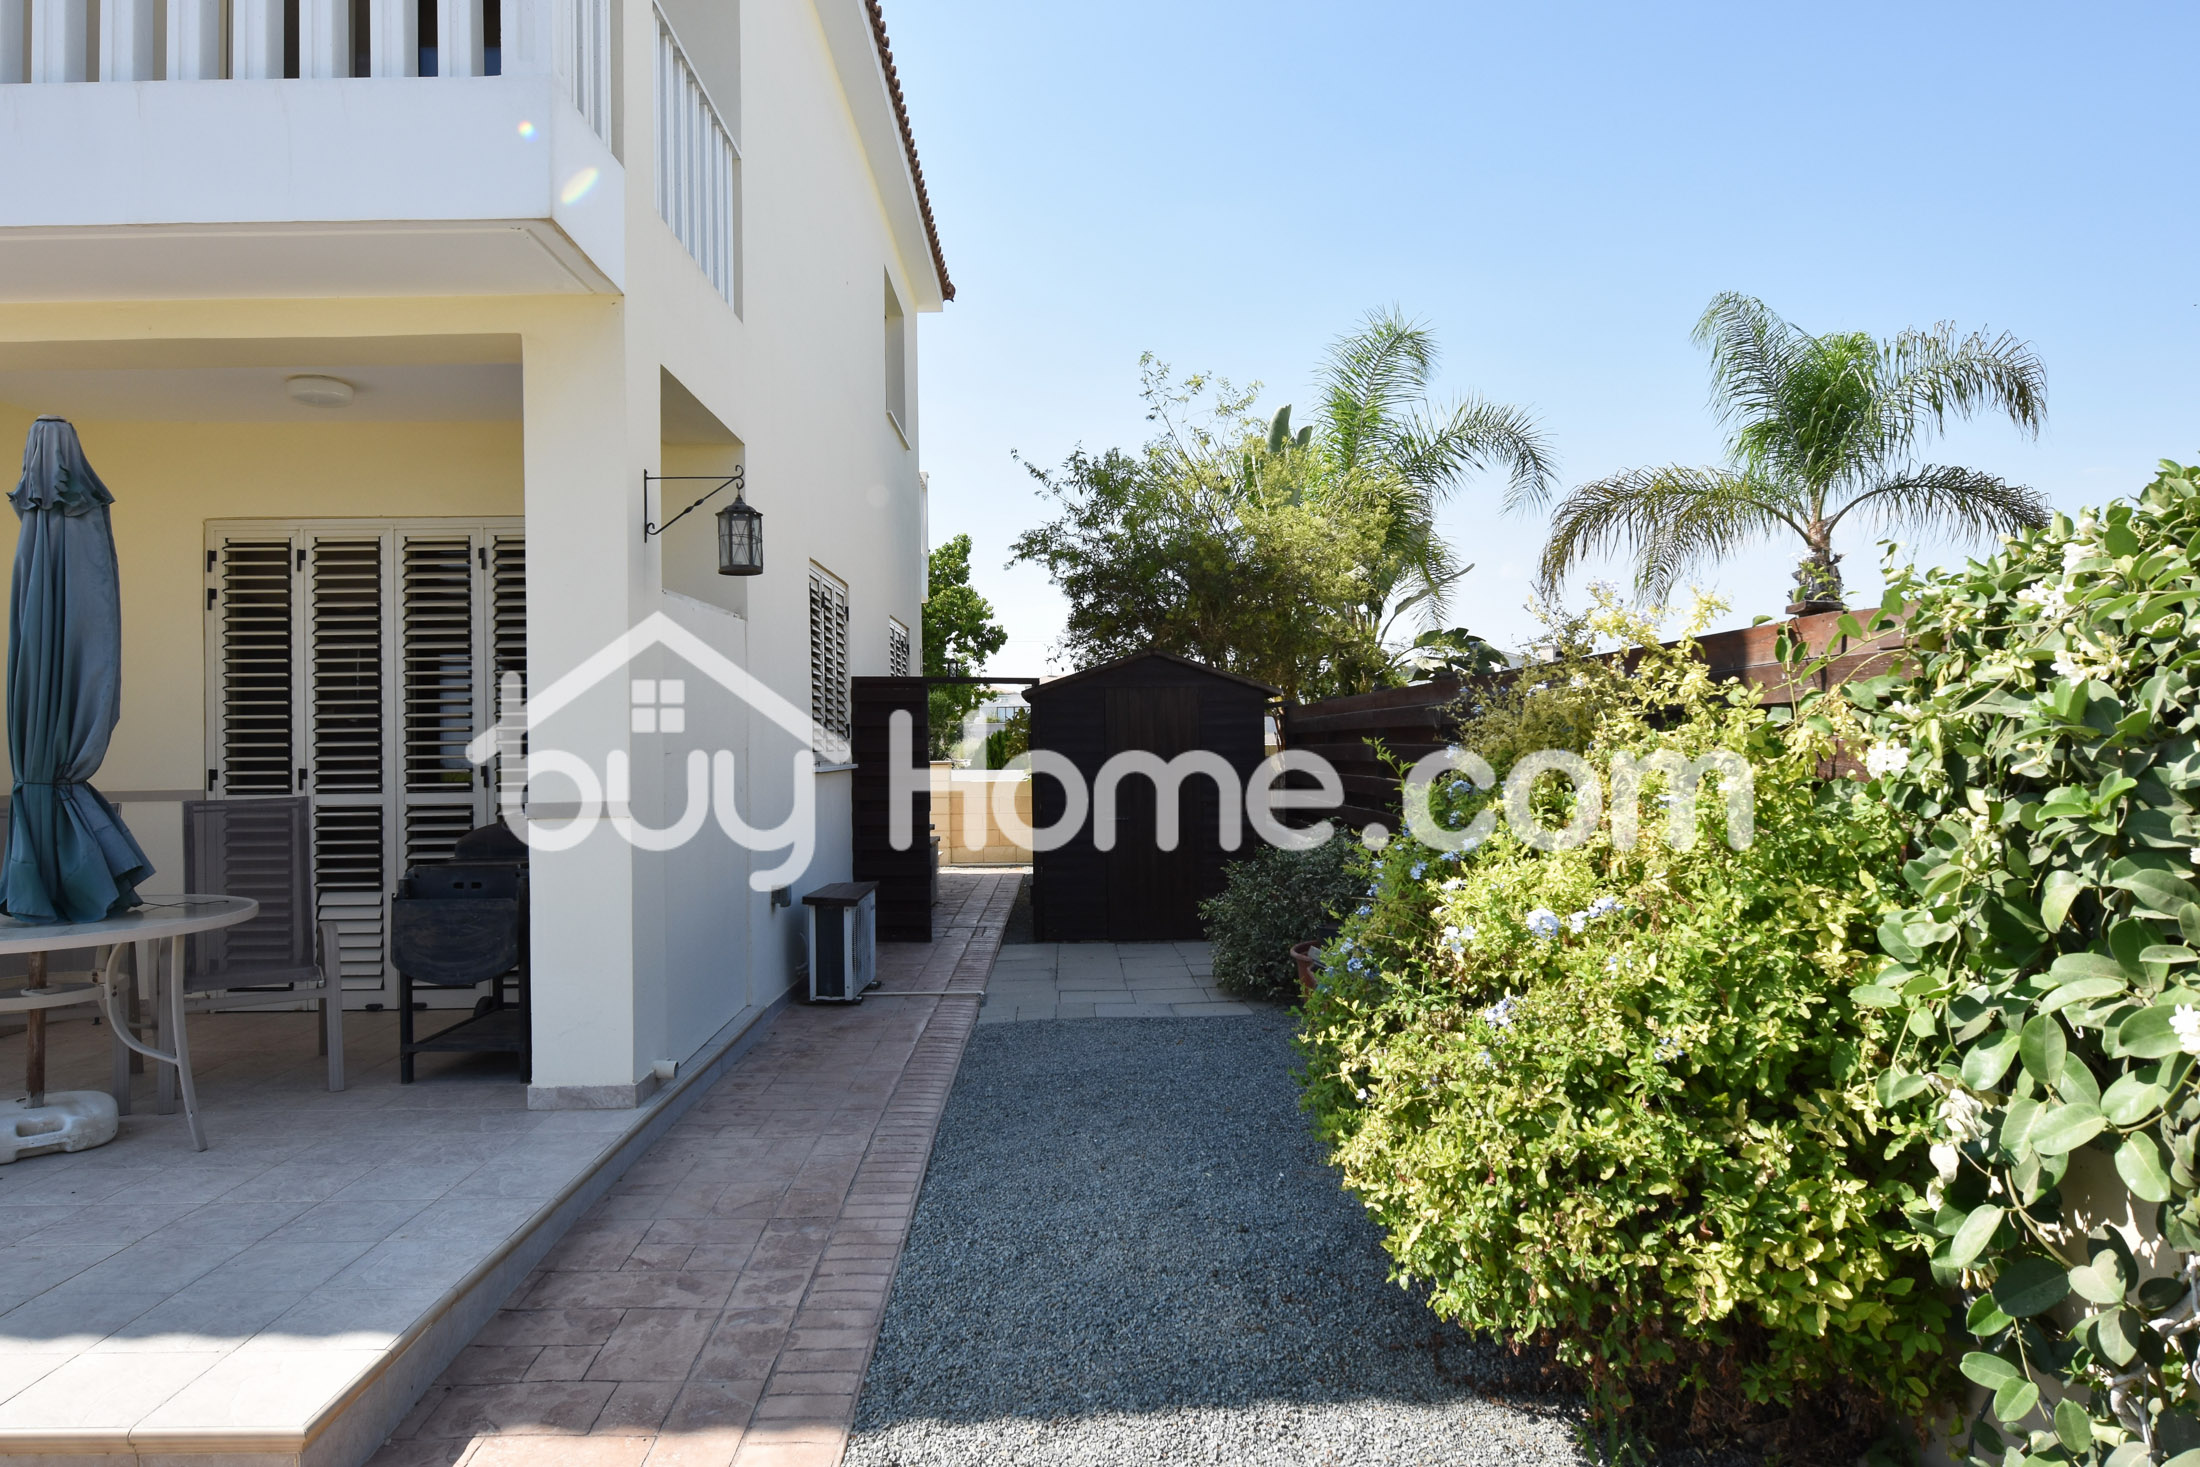 3 bedroom Detached House | BuyHome